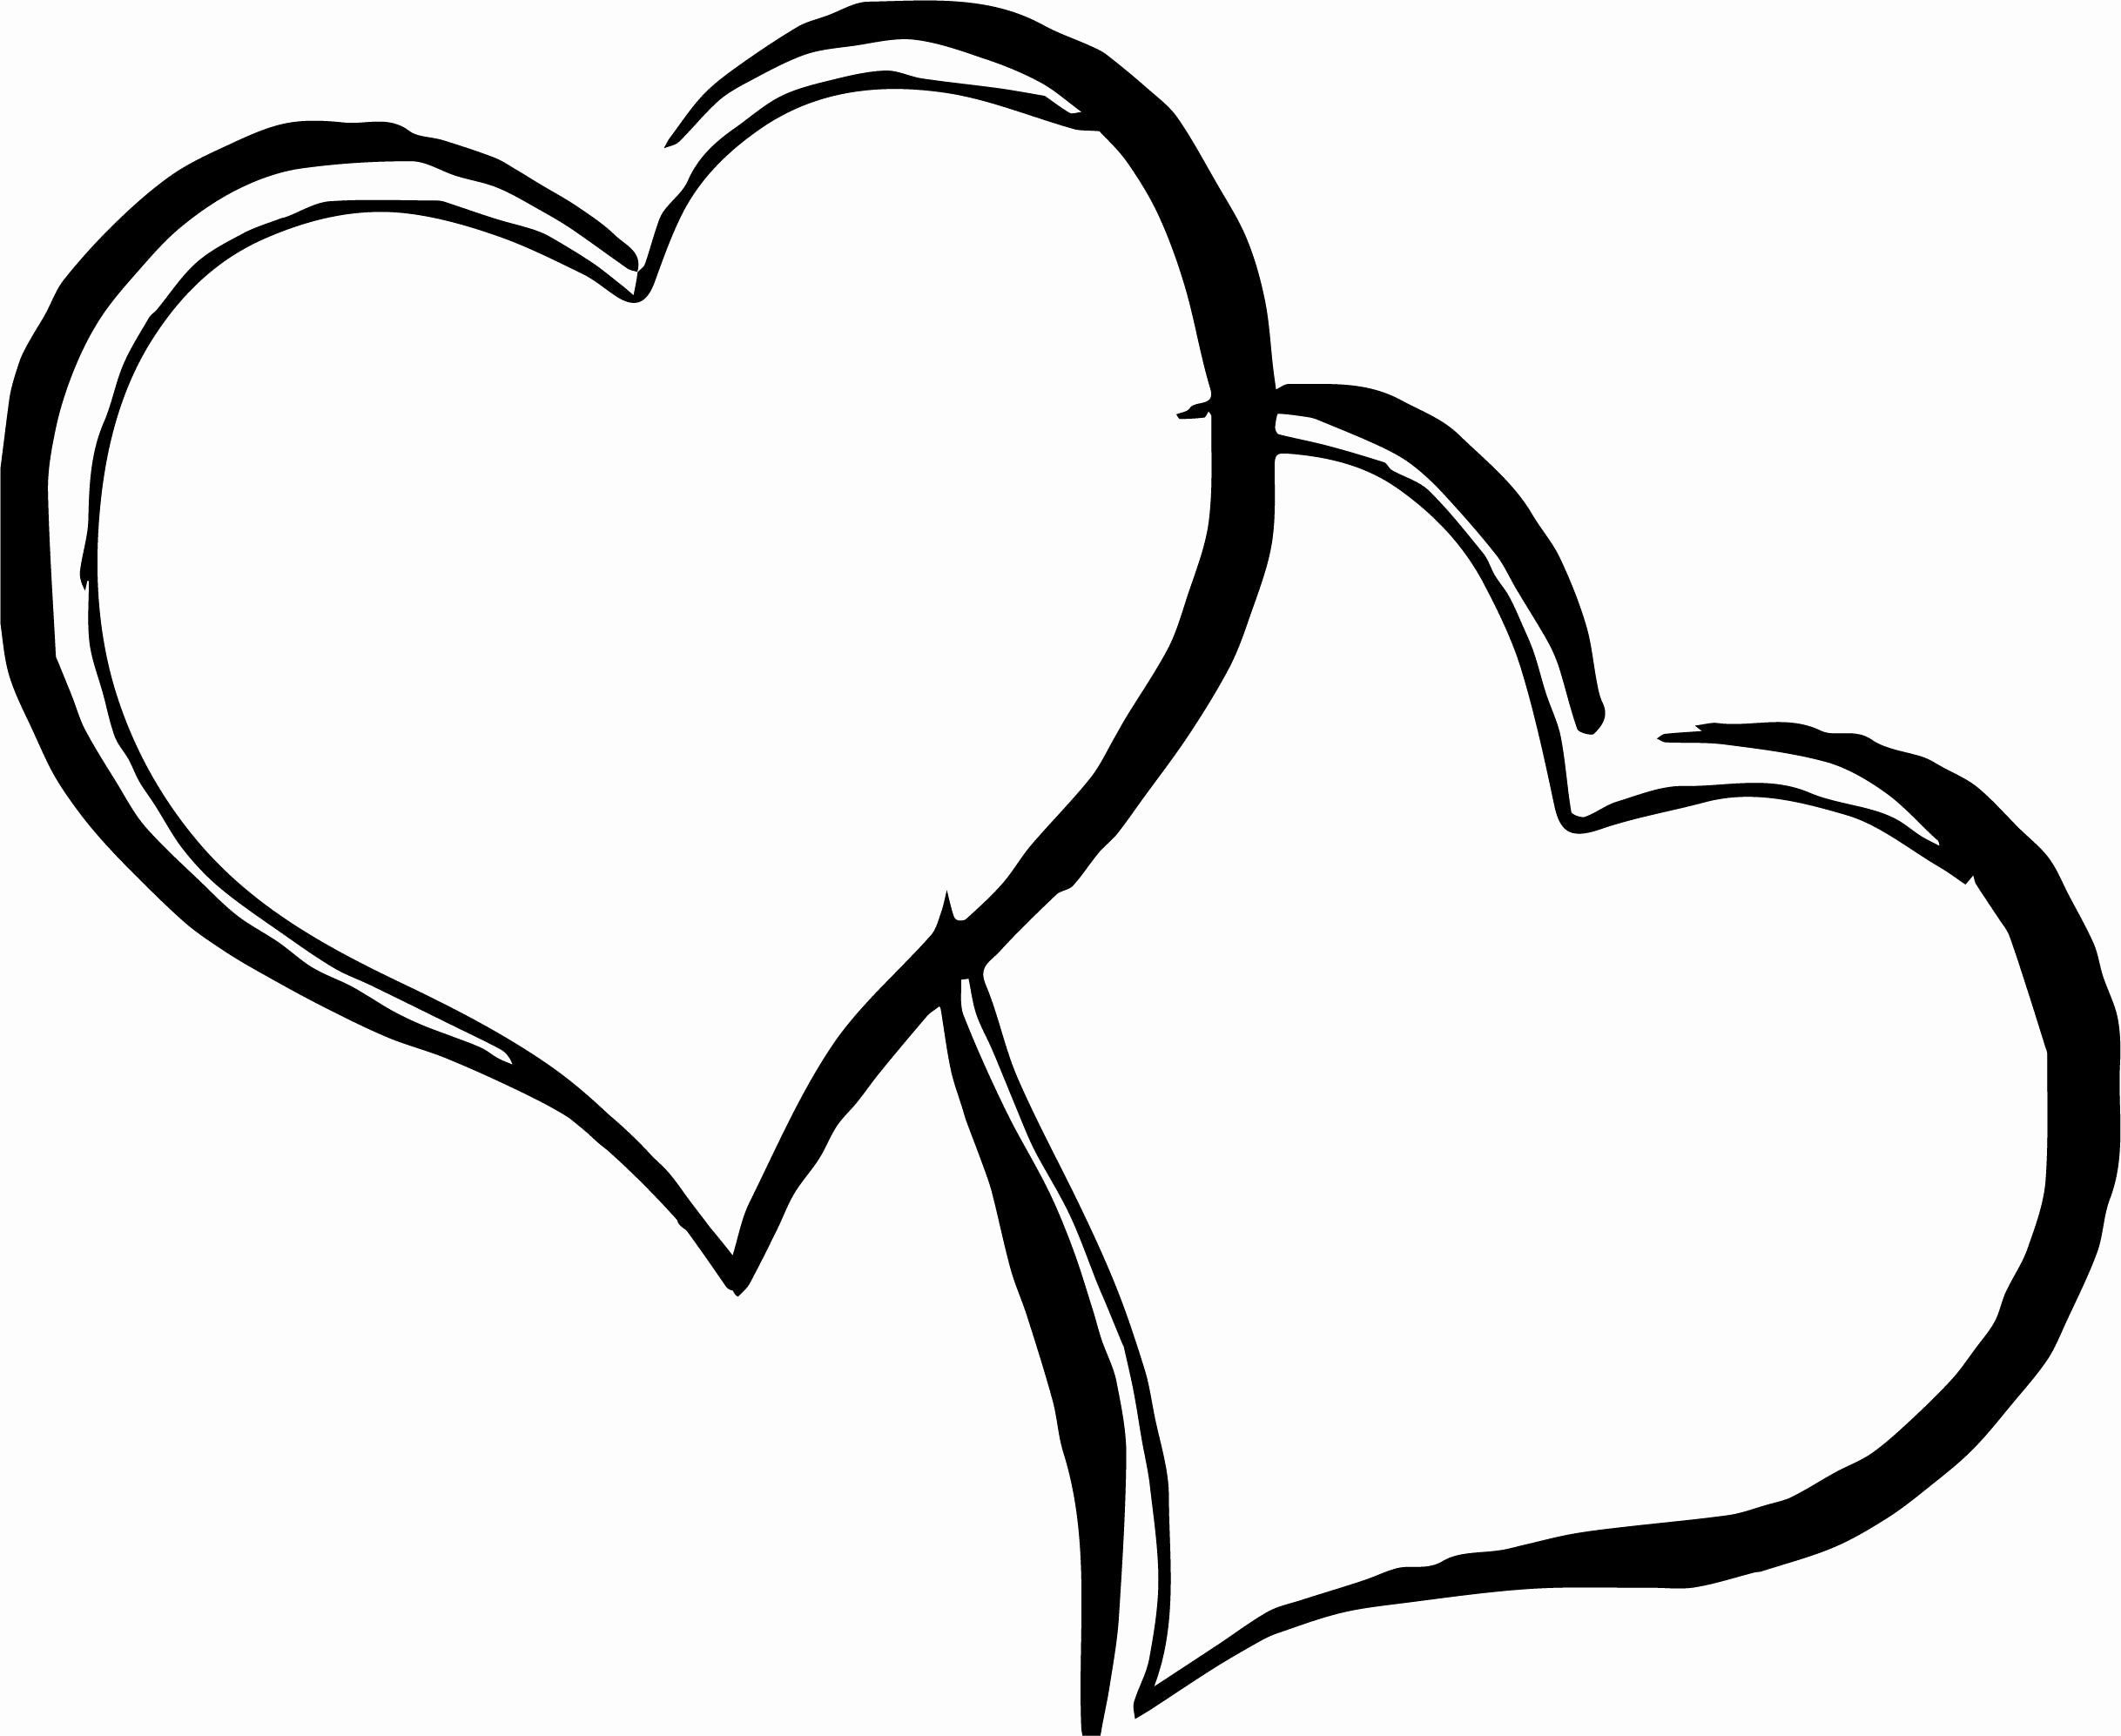 cartoon heart coloring pages valentine heart coloring pages best coloring pages for kids pages heart cartoon coloring